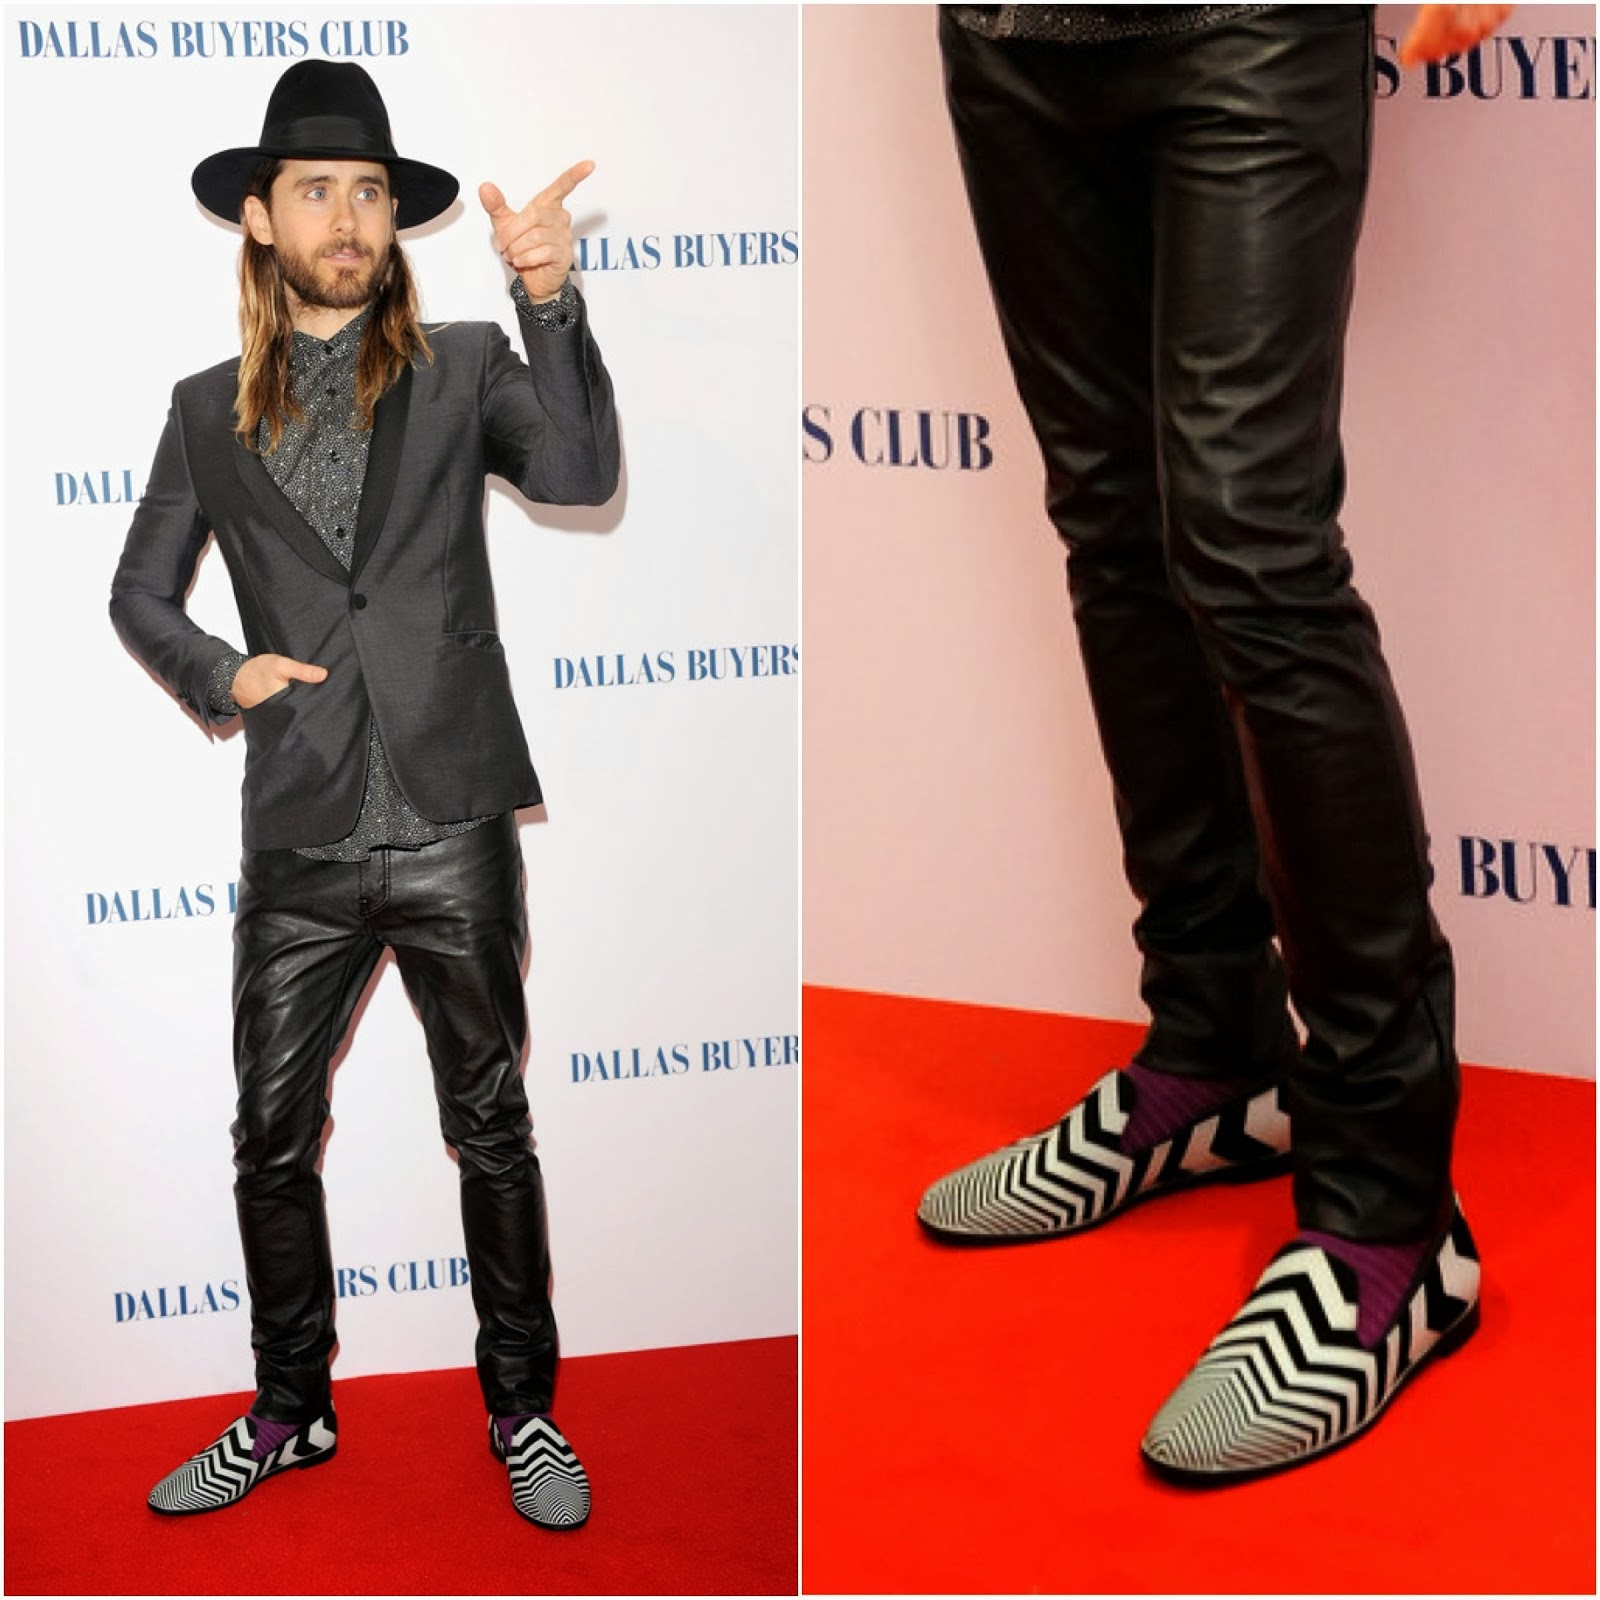 Jared Leto's Nicholas Kirkwood Shoes - 'Dallas Buyers Club' UK Premiere